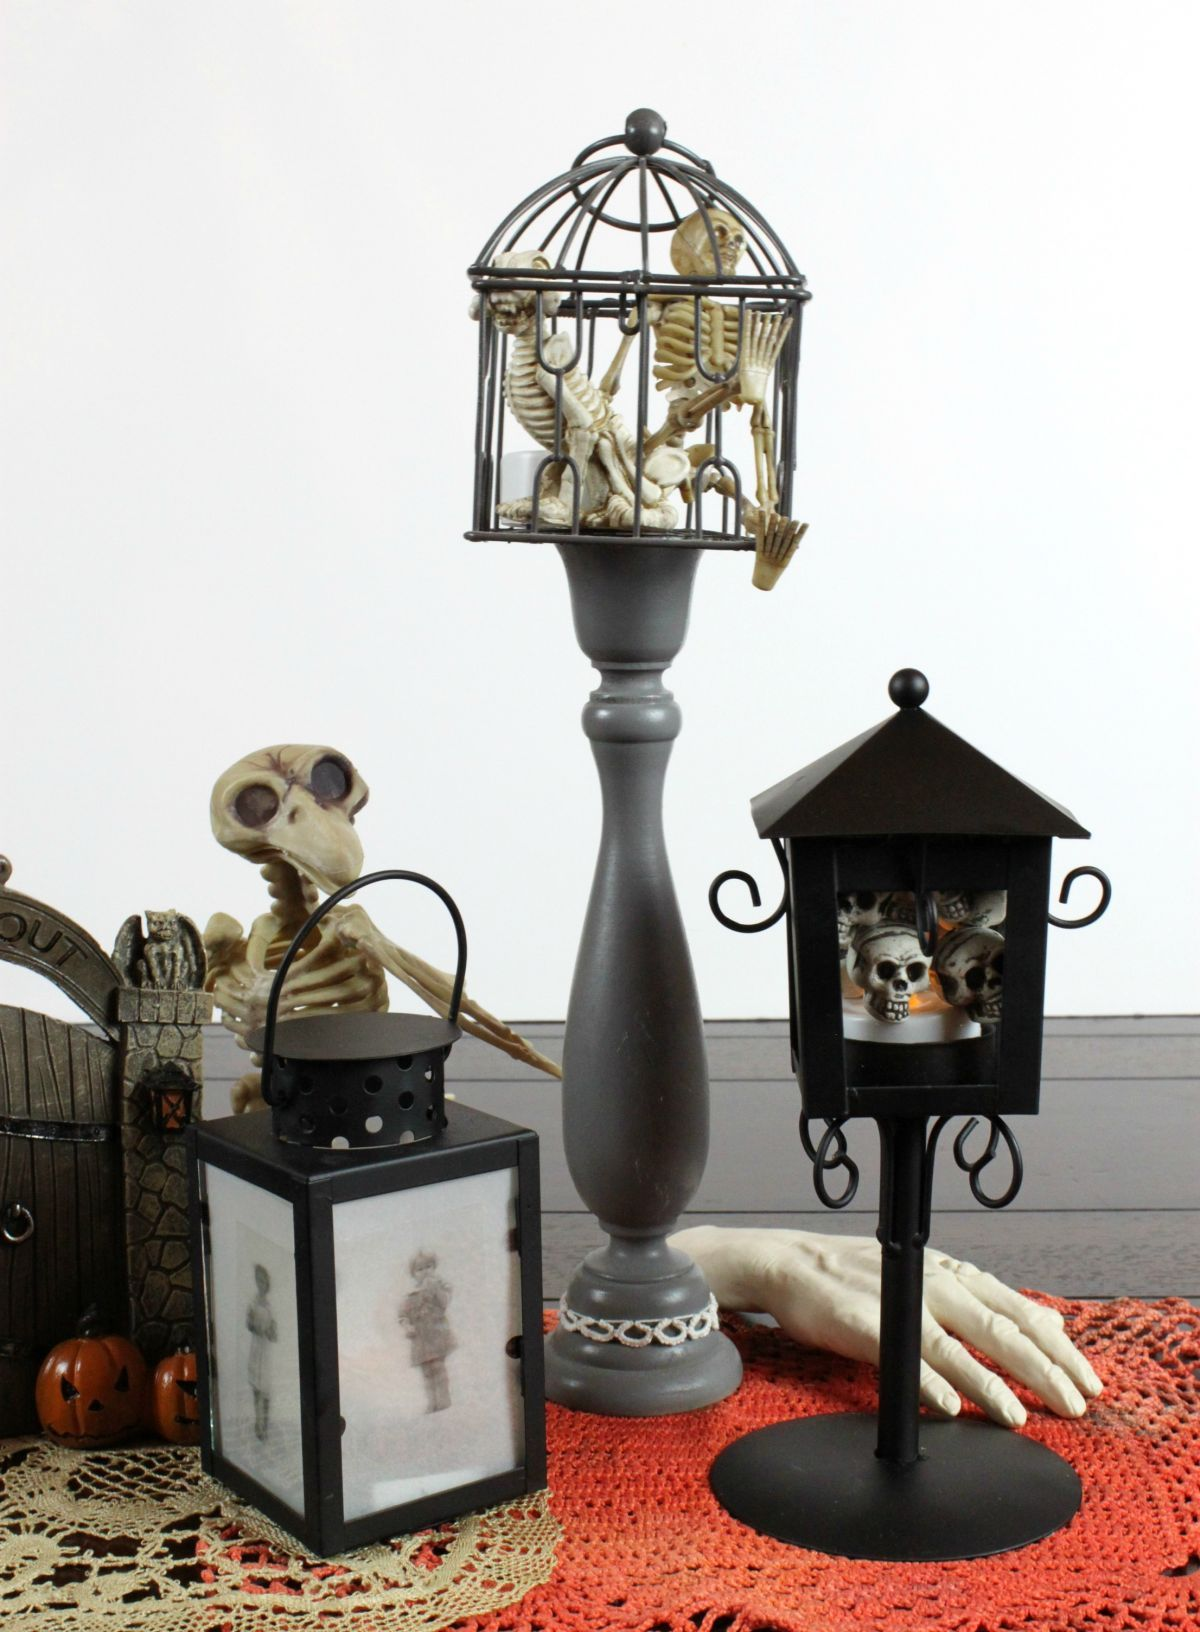 1571127052 86 diy halloween candle projects with spooky designs - DIY Halloween Candle Projects With Spooky Designs